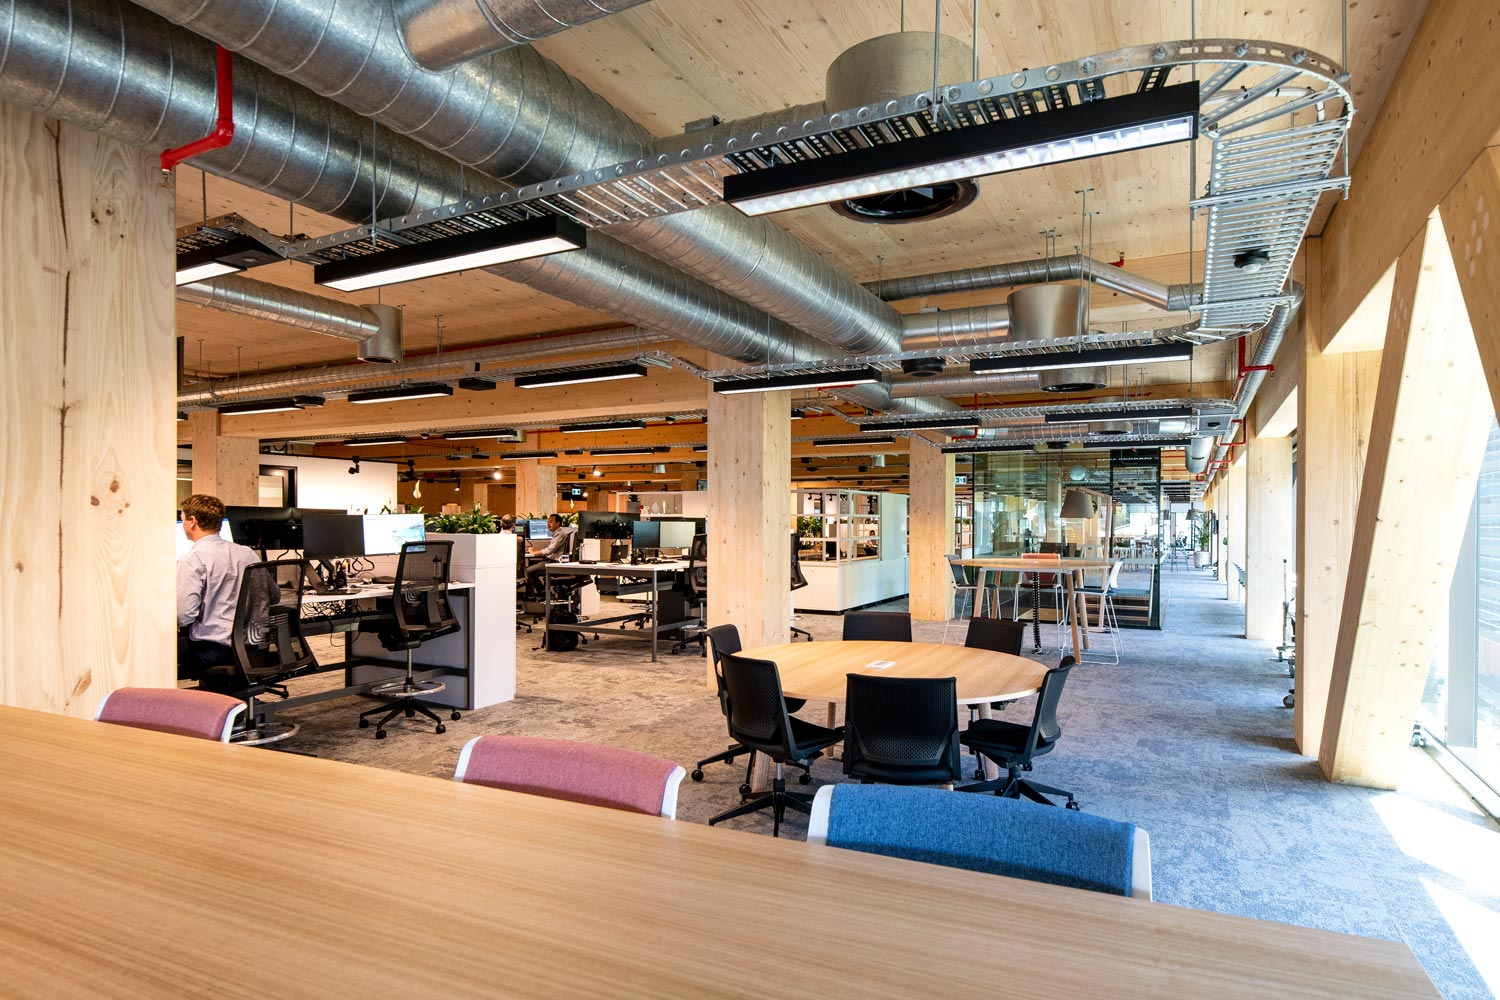 Wood-structures-interior-office-space